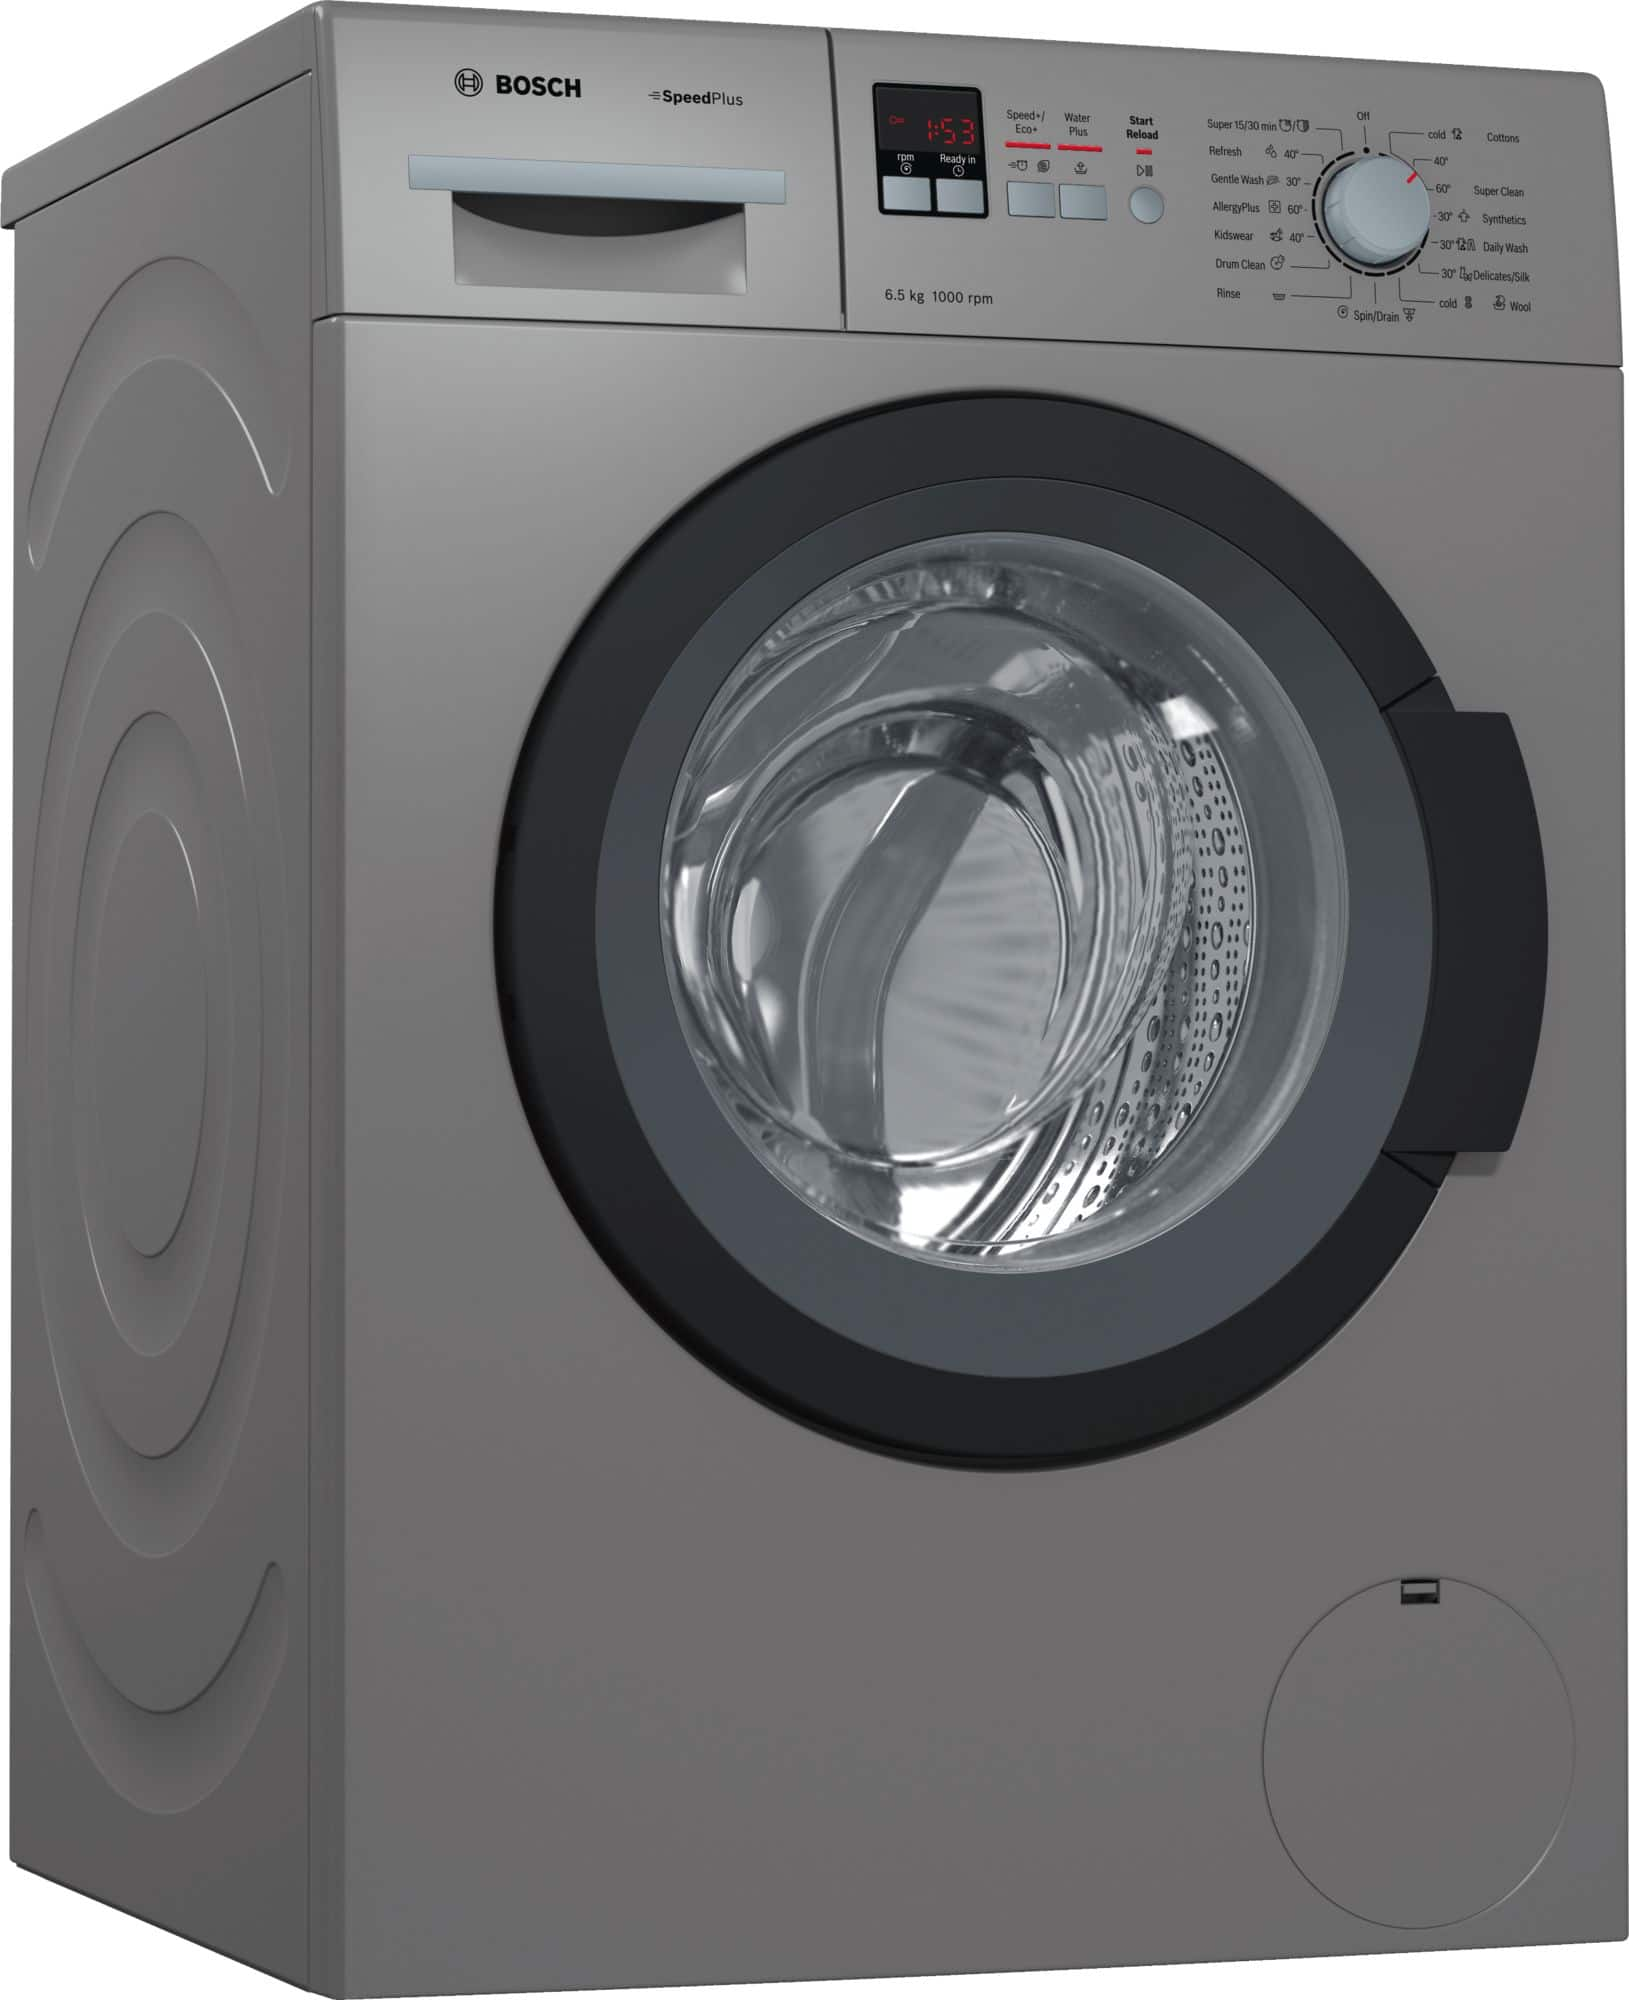 10 Best Washing Machines Under 15000 India 2019 (Reviews) 6